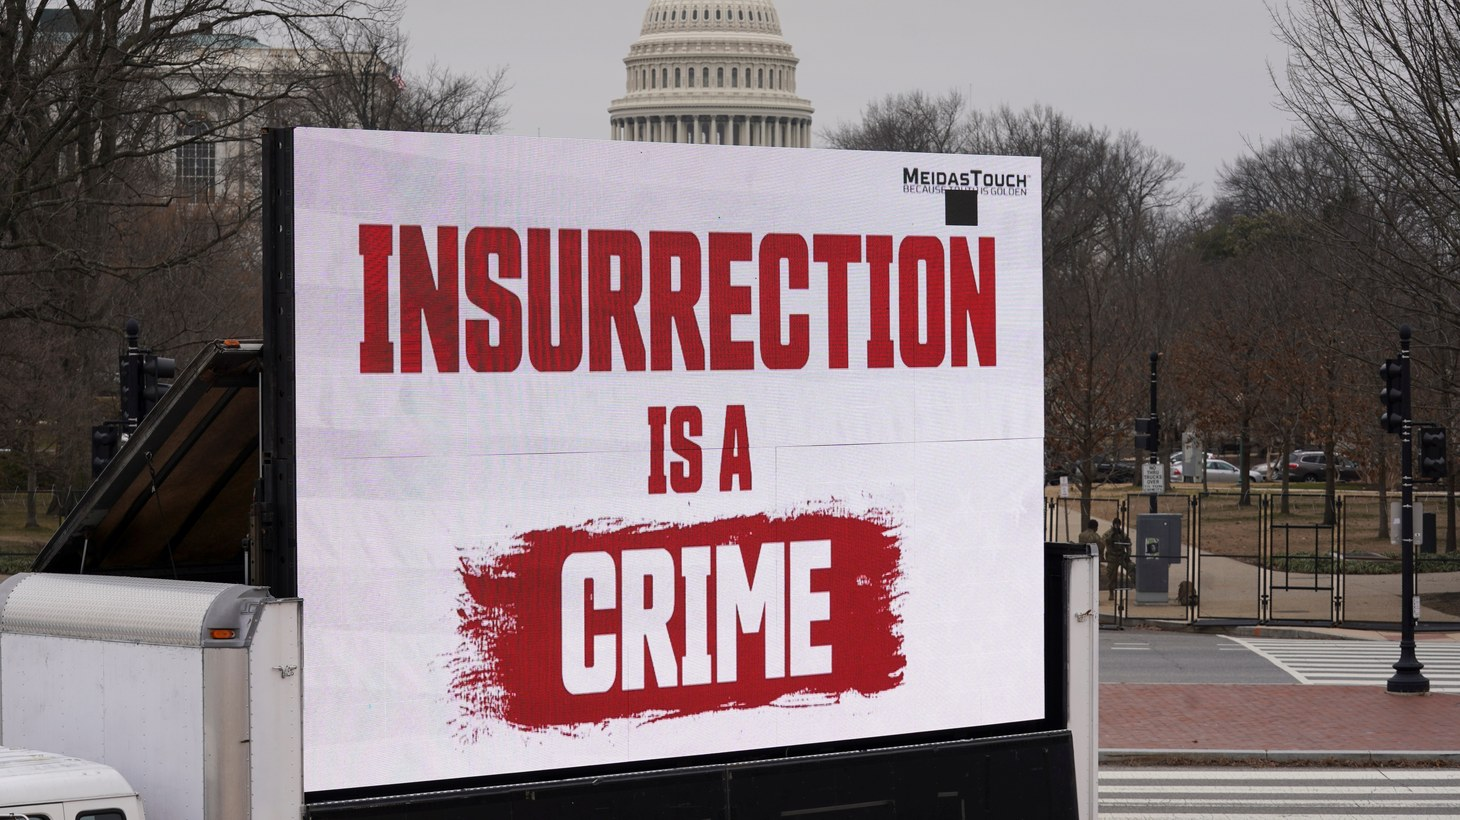 A video screen affixed to a truck flashes an anti-Trump message near the U.S. Capitol during former U.S President Donald Trump's second impeachment trial in Washington, U.S., February 12, 2021.